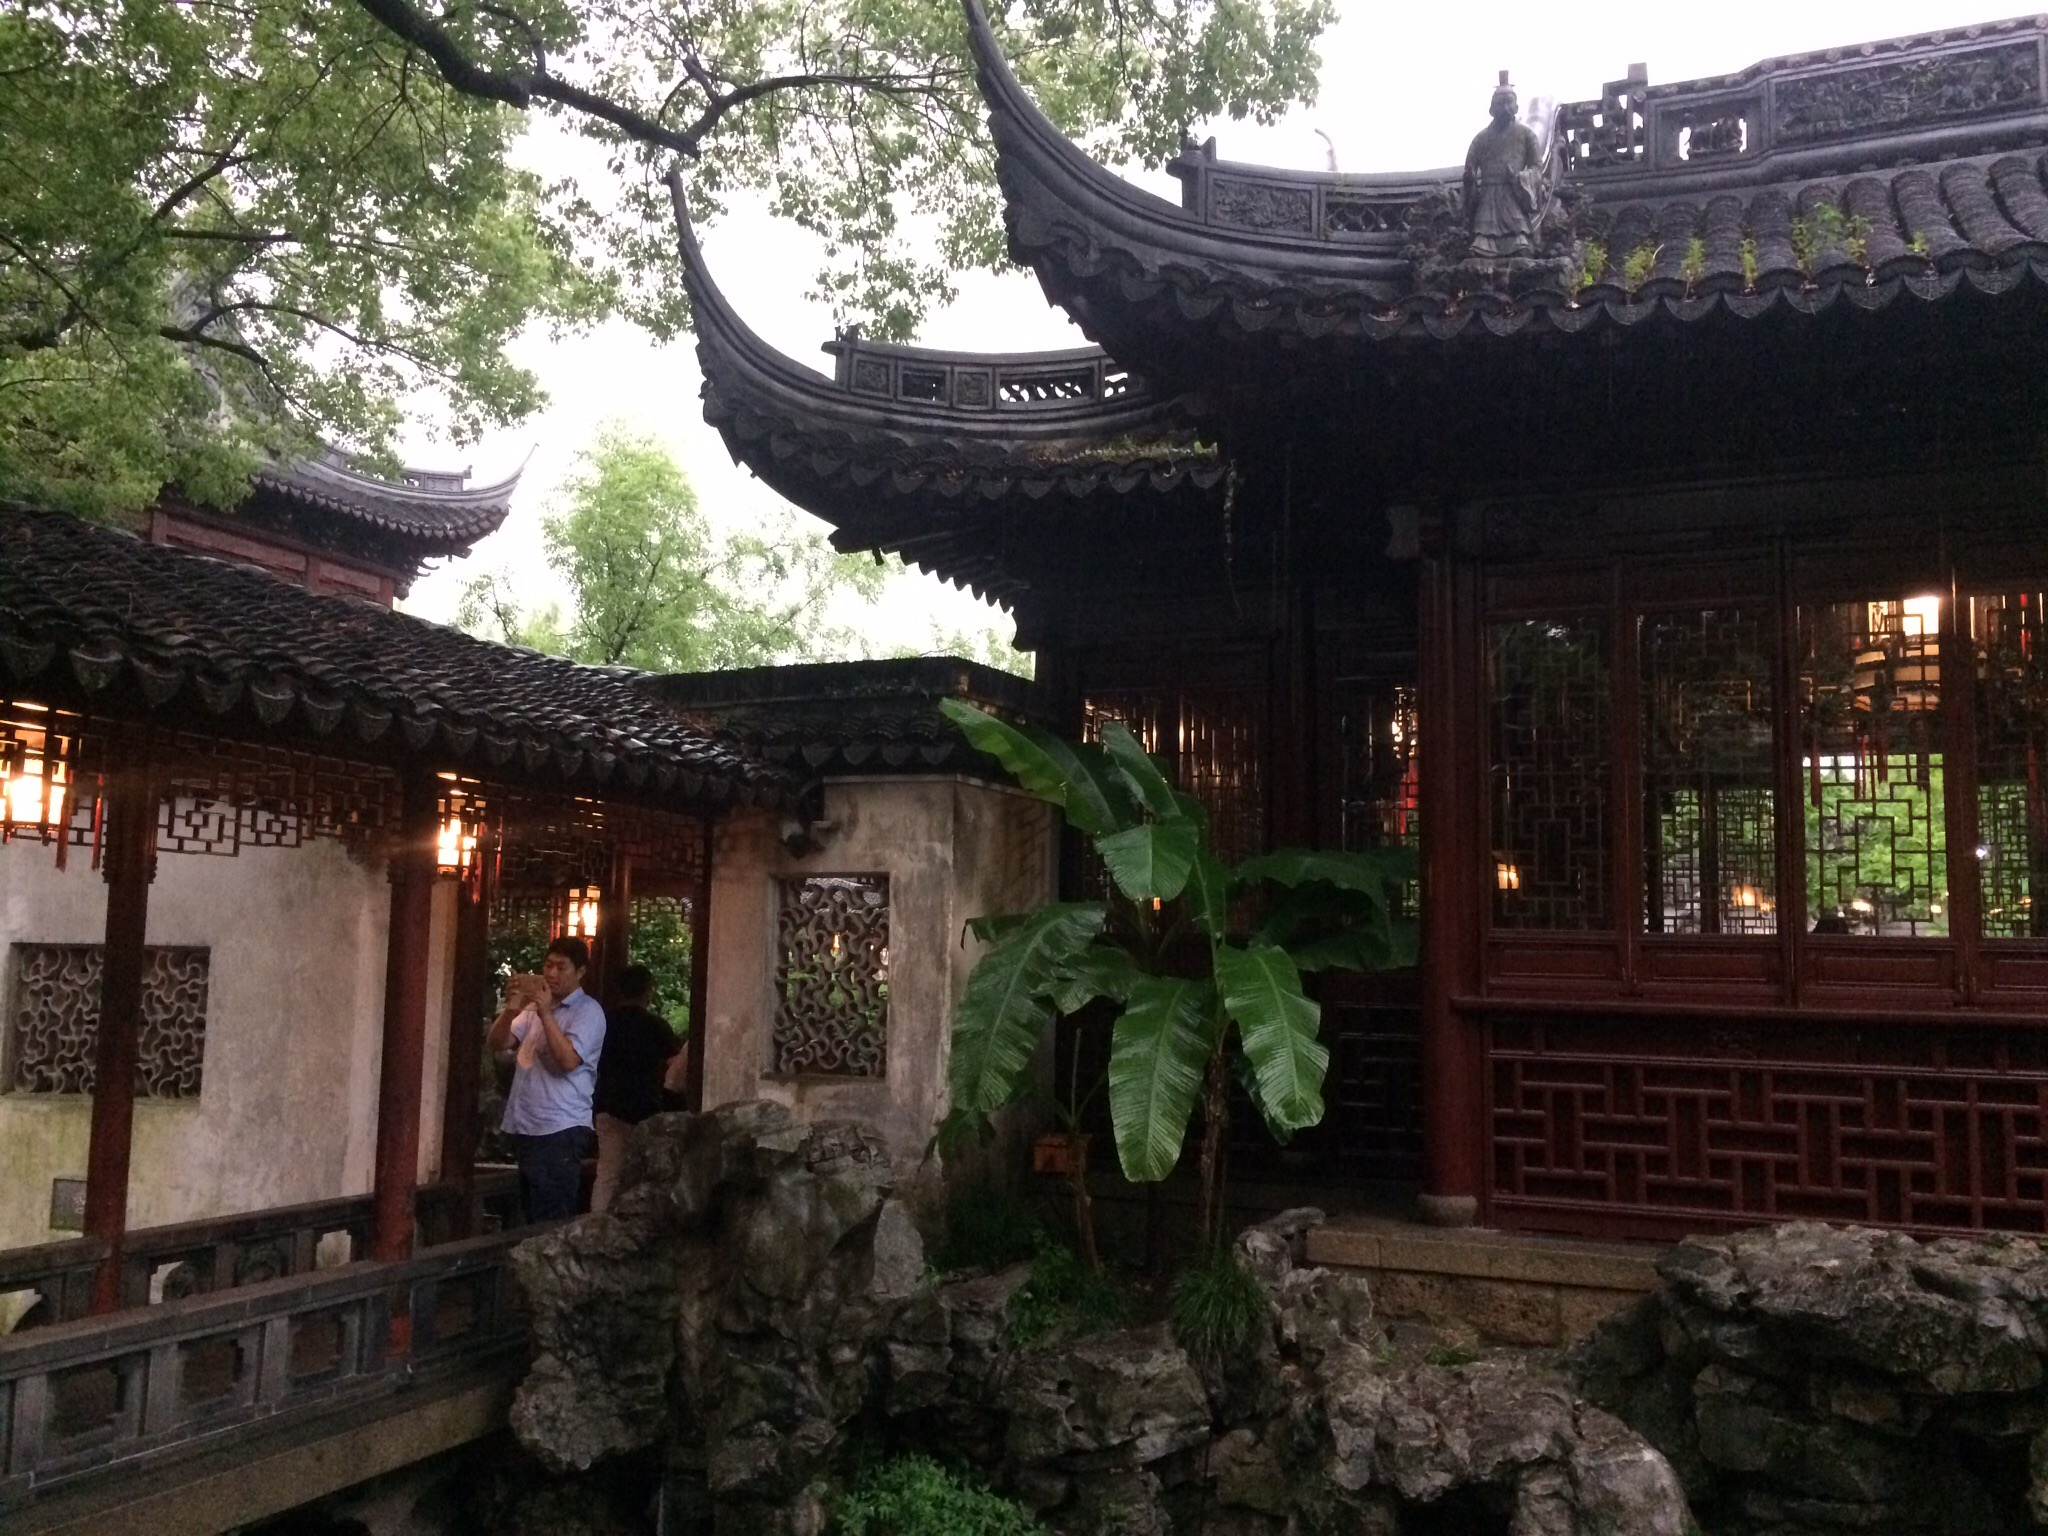 Inside the Yu Gardens.